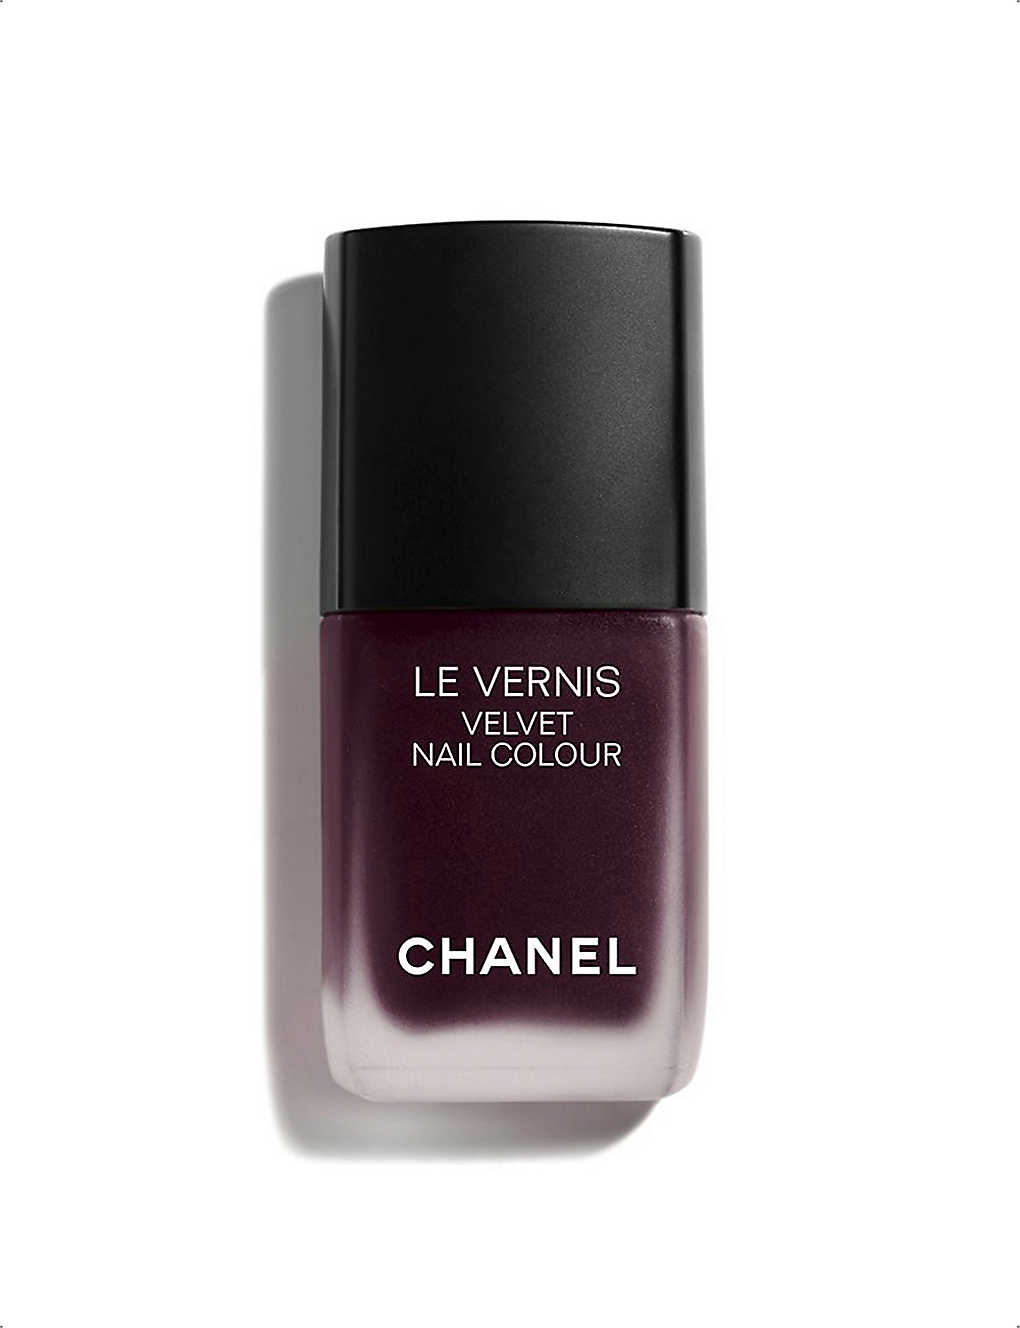 CHANEL - LE VERNIS Velvet Nail Colour 13ml | Selfridges.com